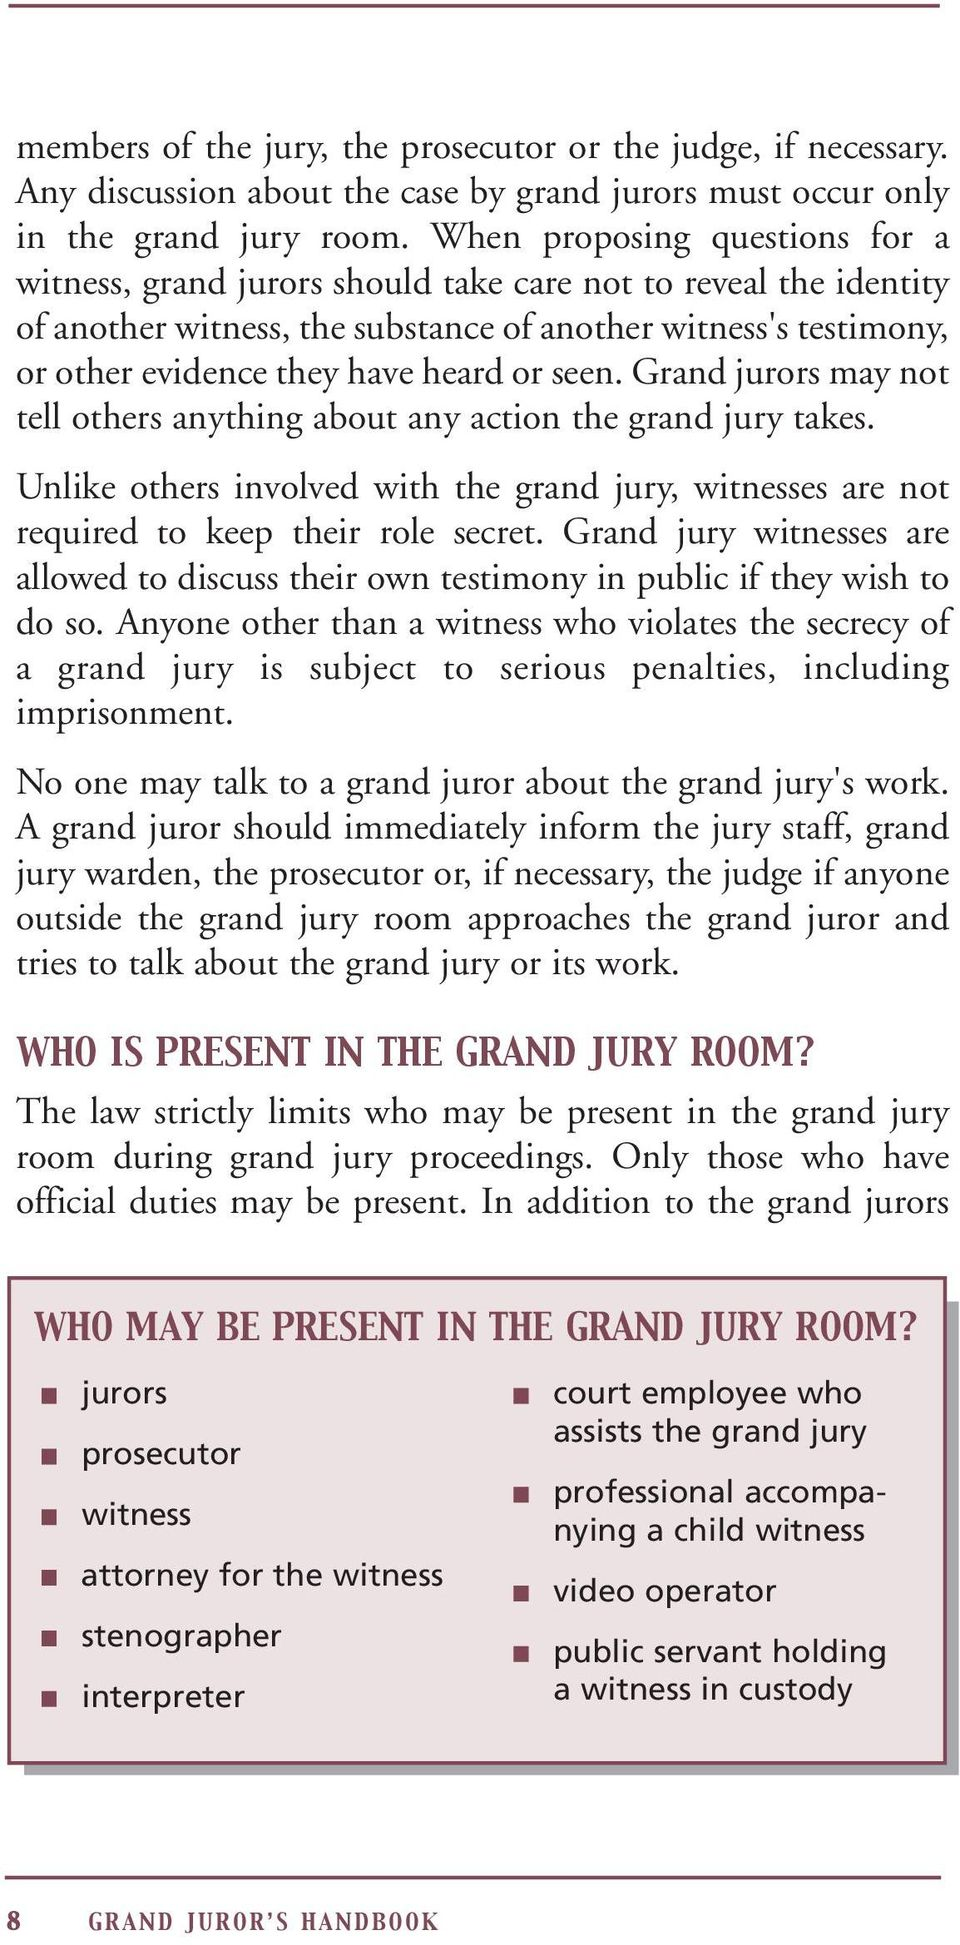 seen. Grand jurors may not tell others anything about any action the grand jury takes. Unlike others involved with the grand jury, witnesses are not required to keep their role secret.